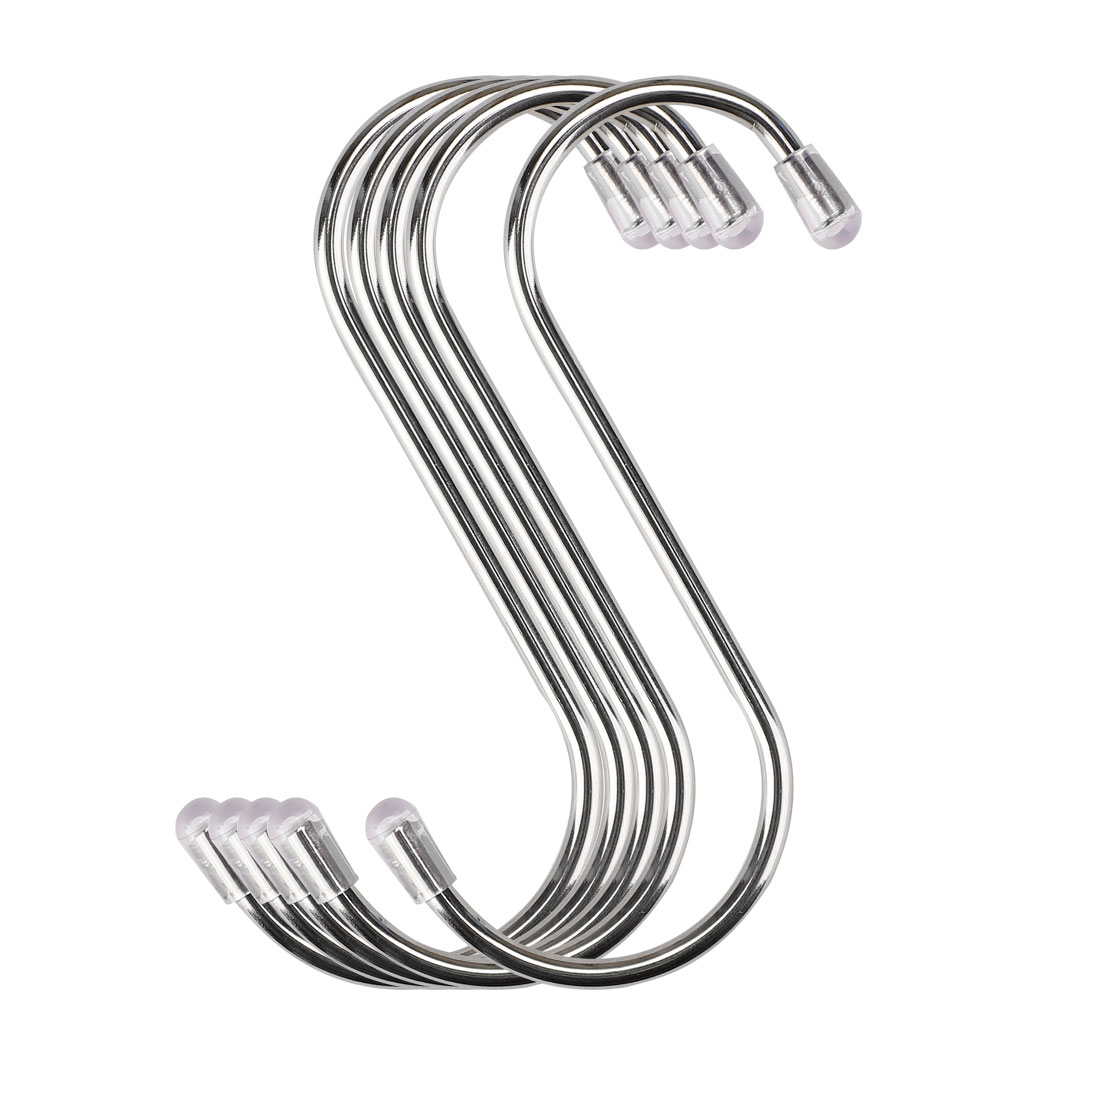 5pcs 3.46 Inch S Shaped Hook Stainless Steel for Kitchenware Hat Coat Holder